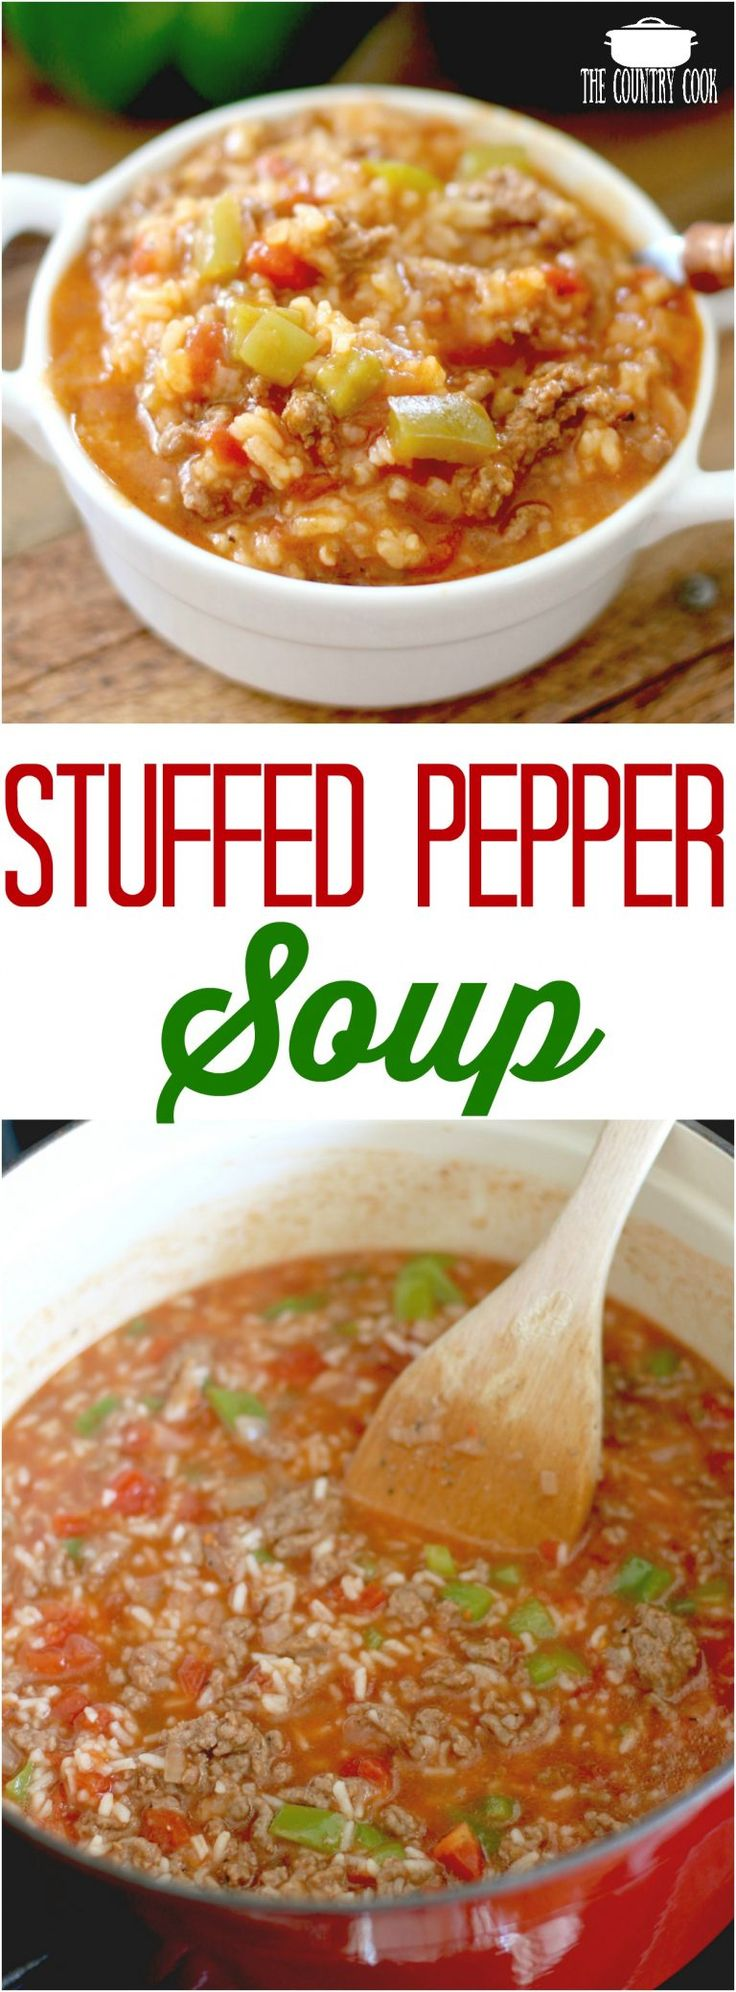 Stuffed Pepper Soup recipe from The Country Cook #soups #dinner #rice #ideas #easy